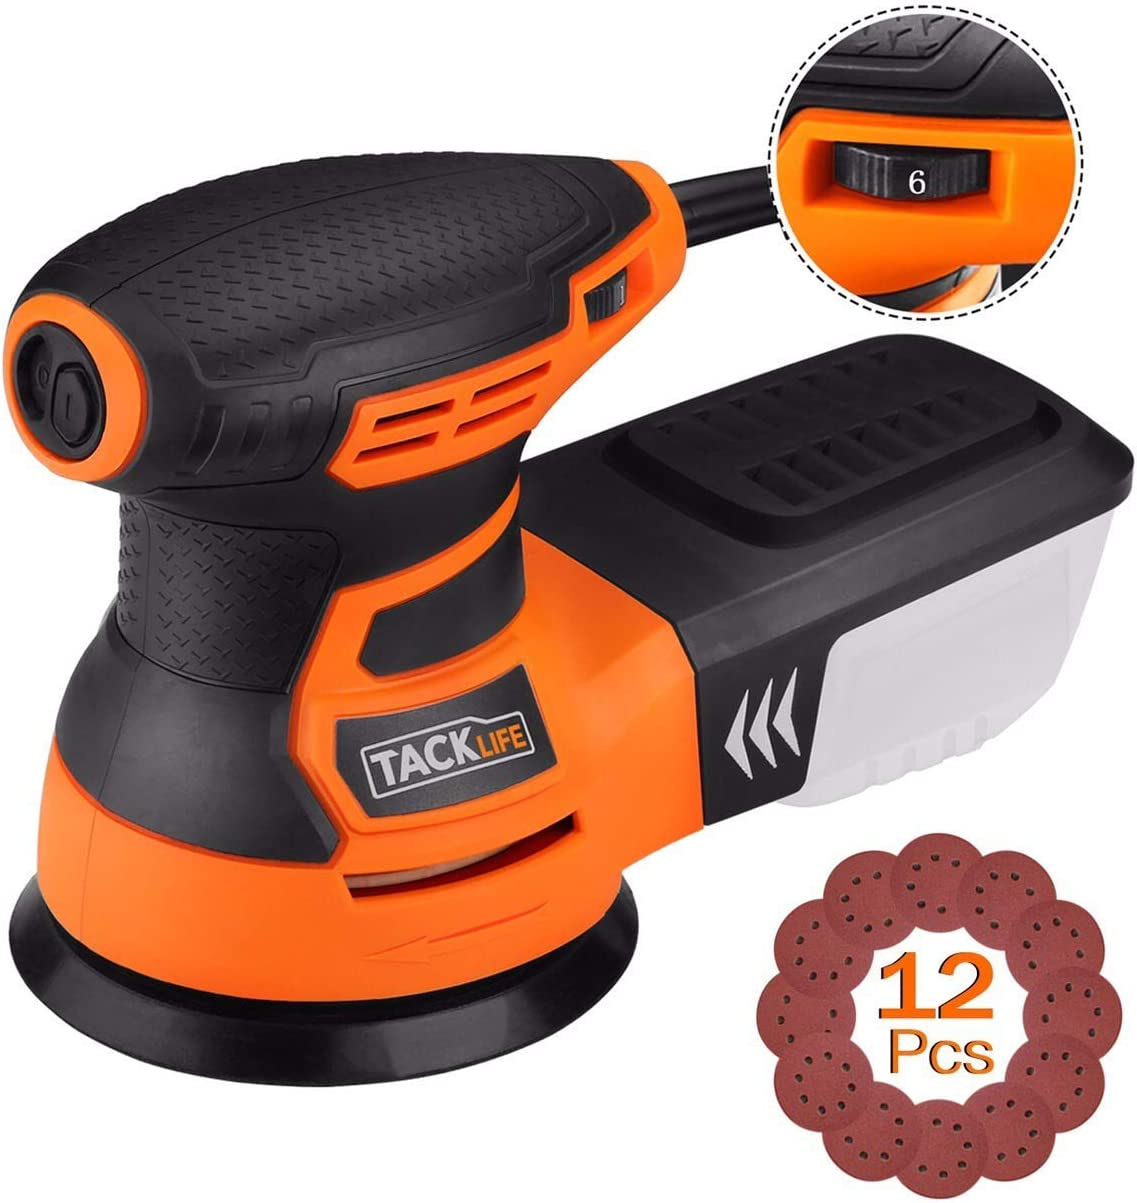 TACKLIFE Orbital Sander